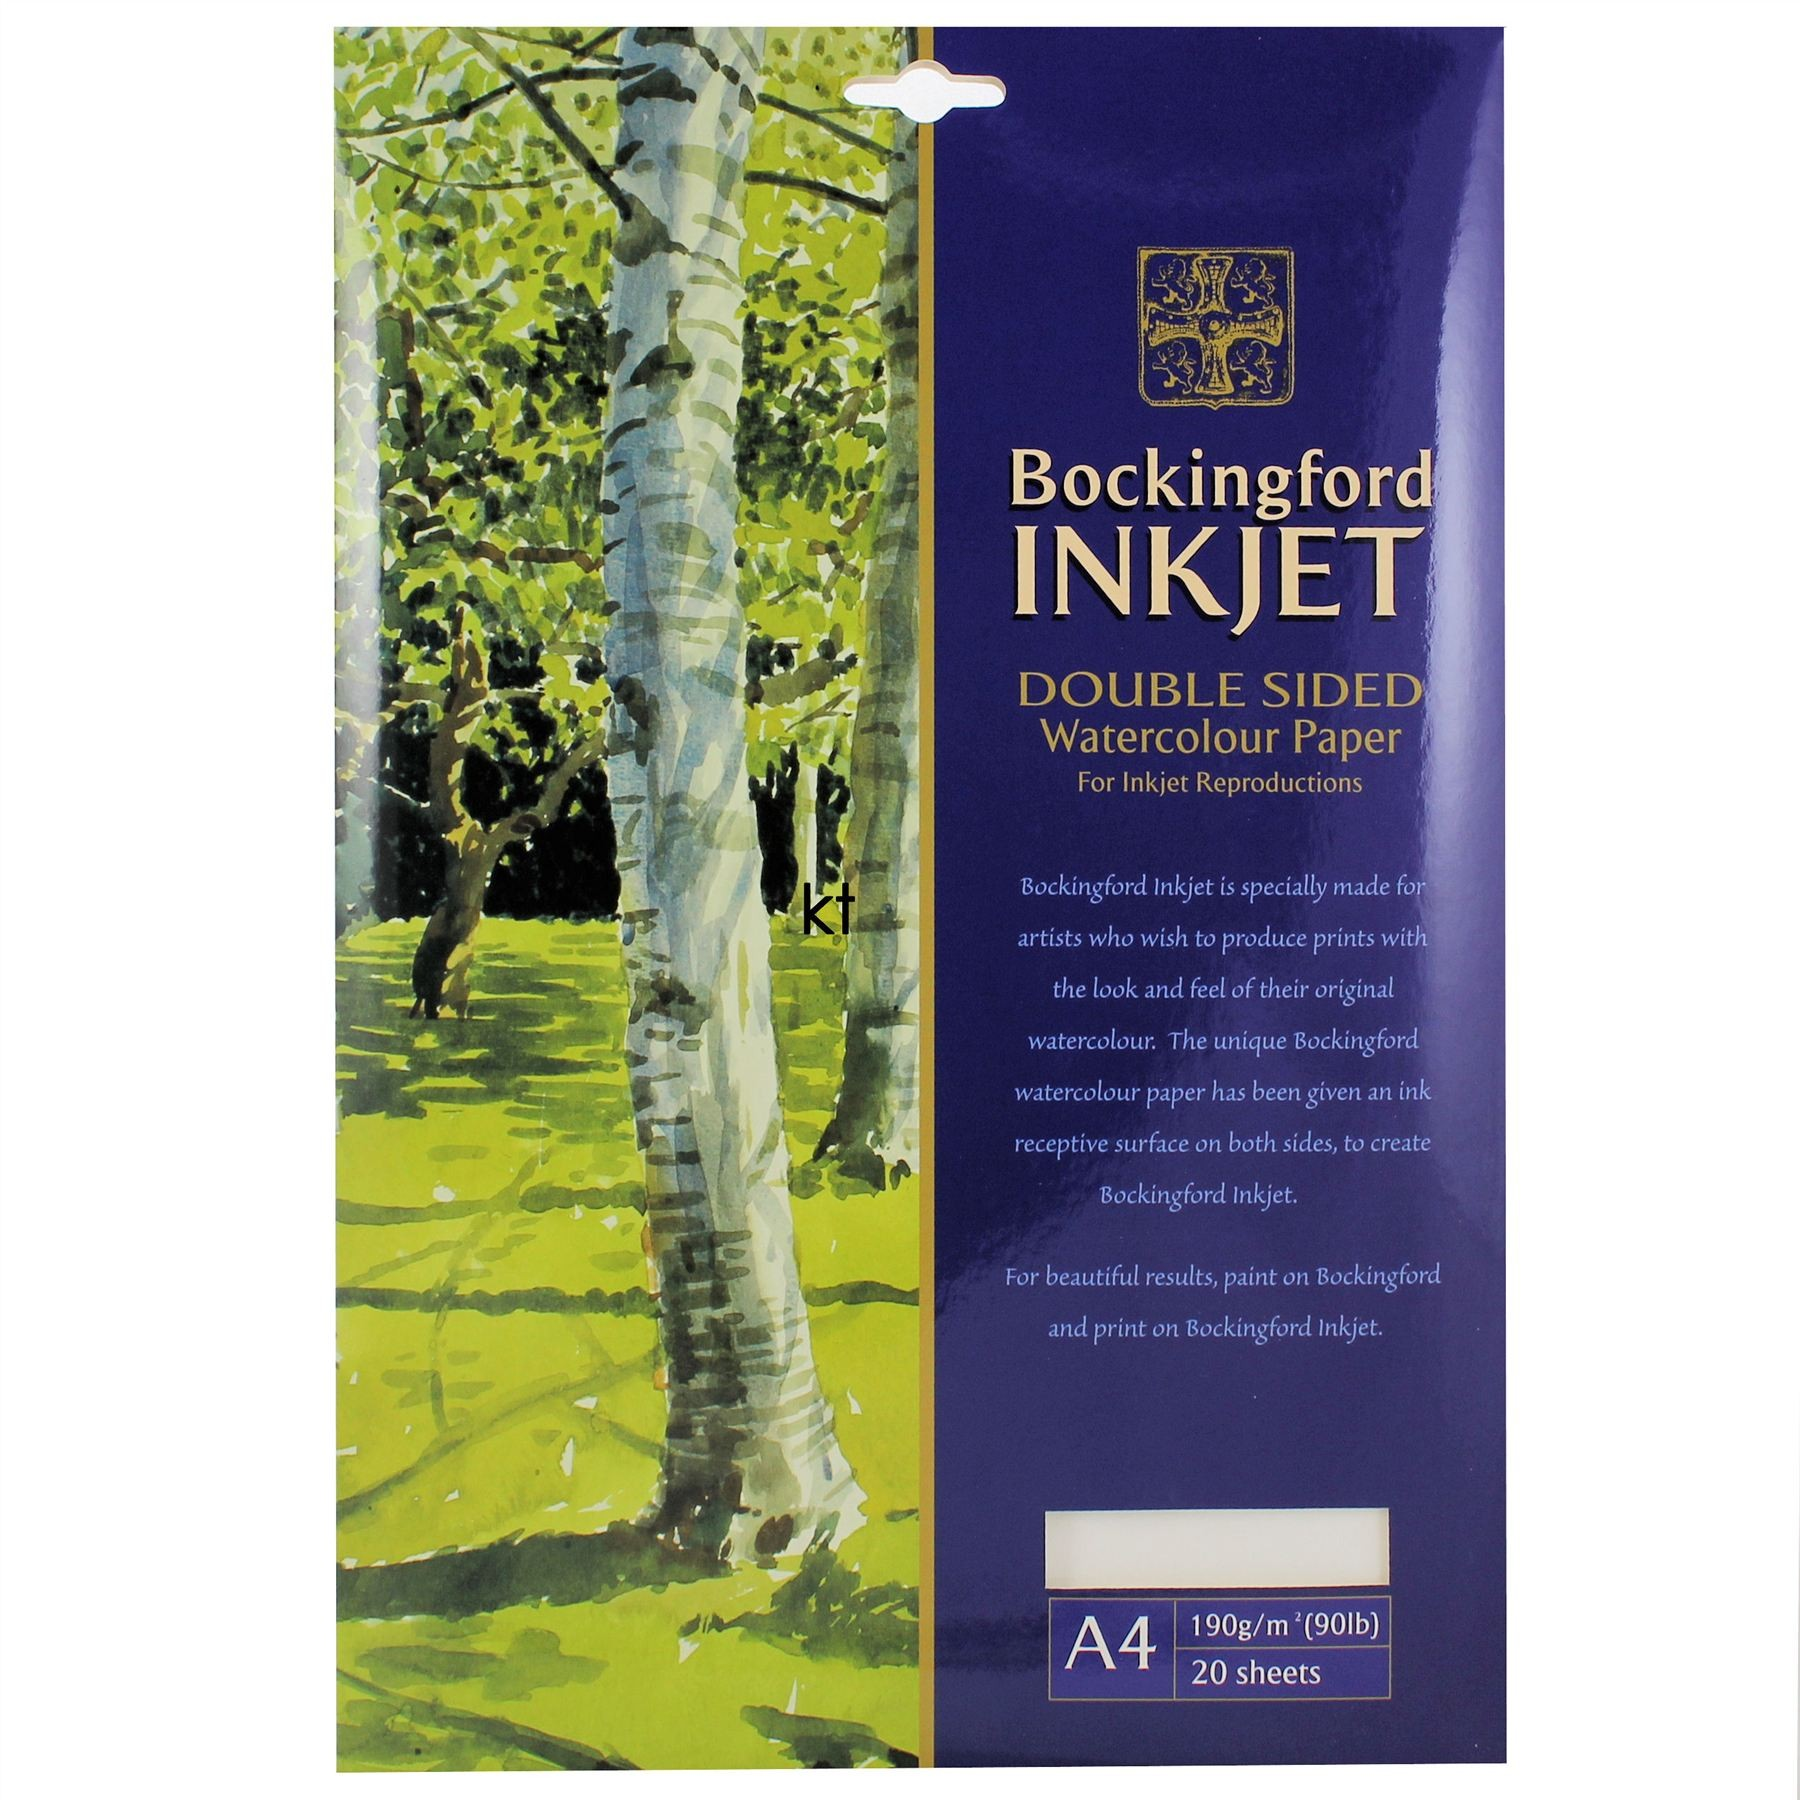 Bockingford Inkjet Double Sided Watercolour Paper A4 20 Sheets